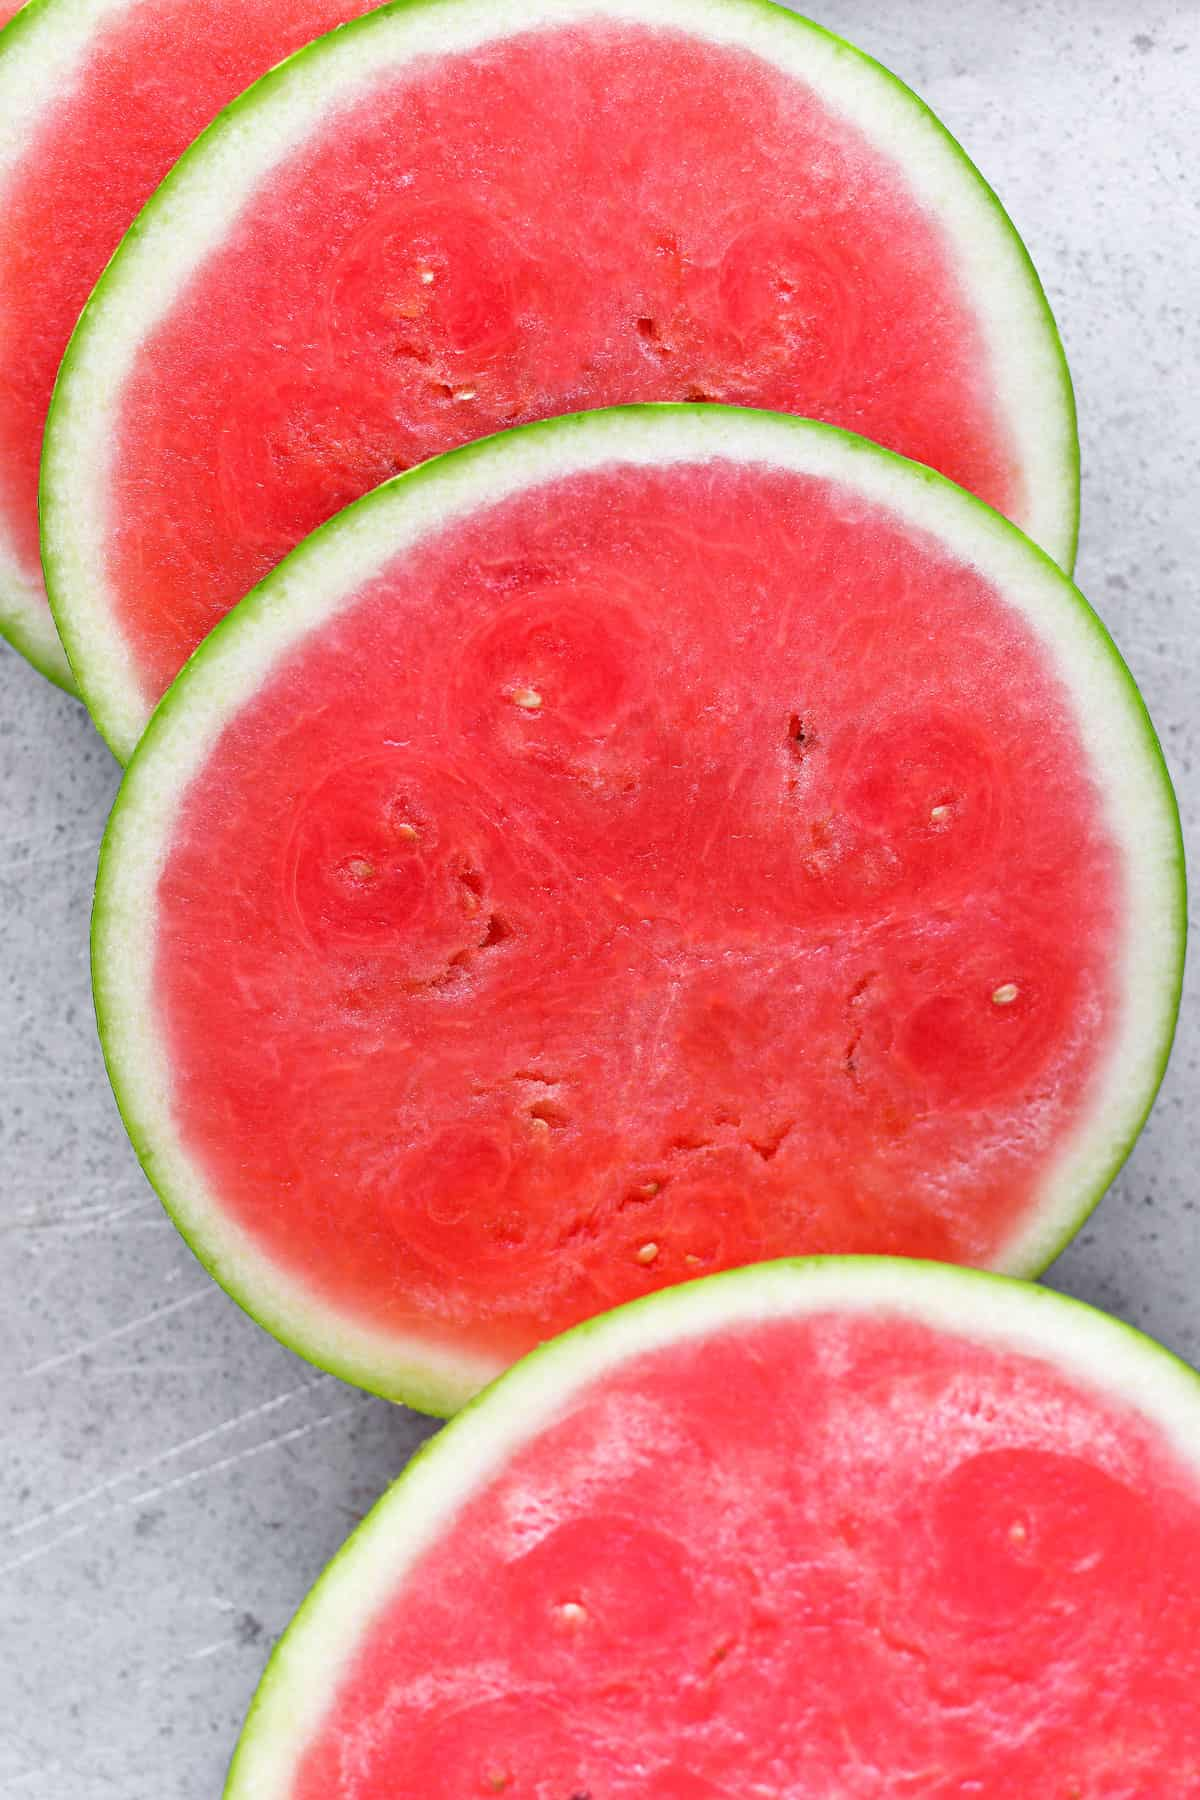 watermelon sliced into rounds